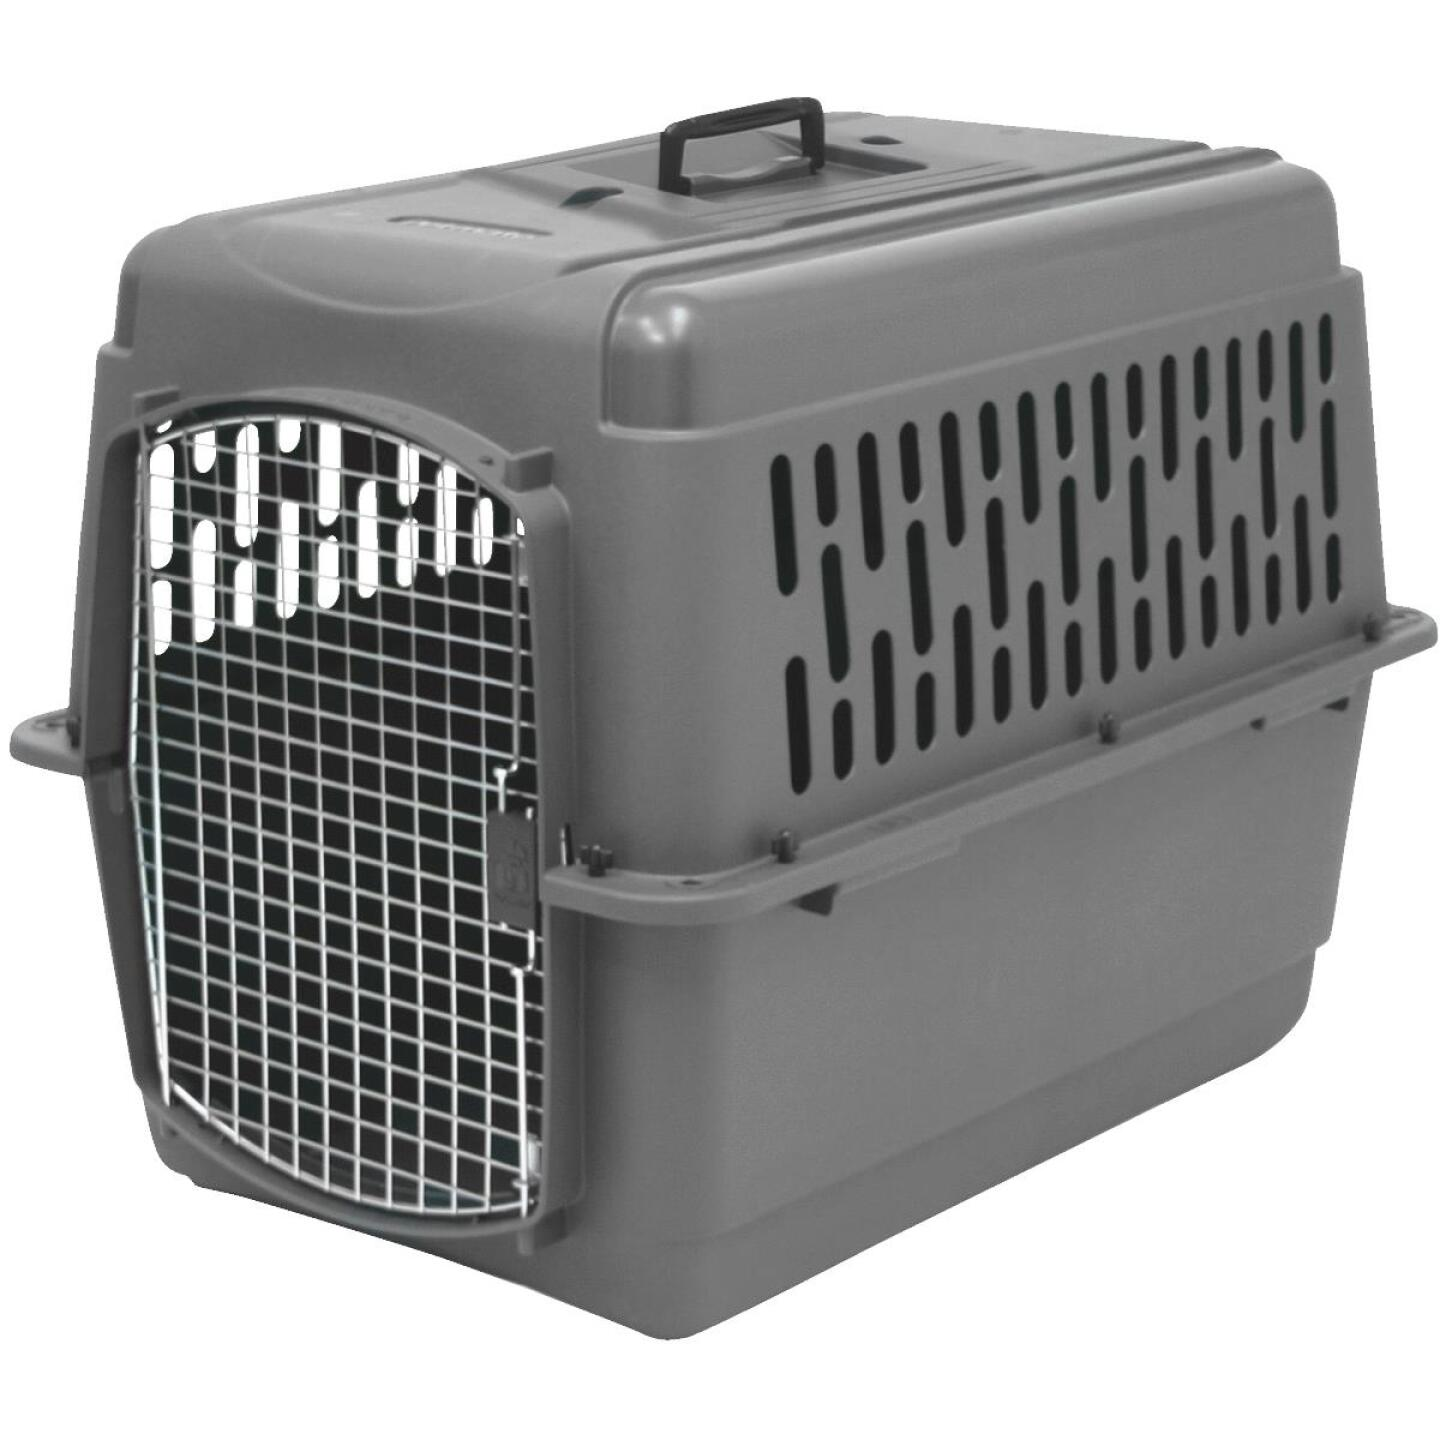 Petmate Aspen Pet 28 In. x 20-1/2 In. x 21-1/2 In. 25 to 30 Lb. Medium Porter Pet Carrier Image 1